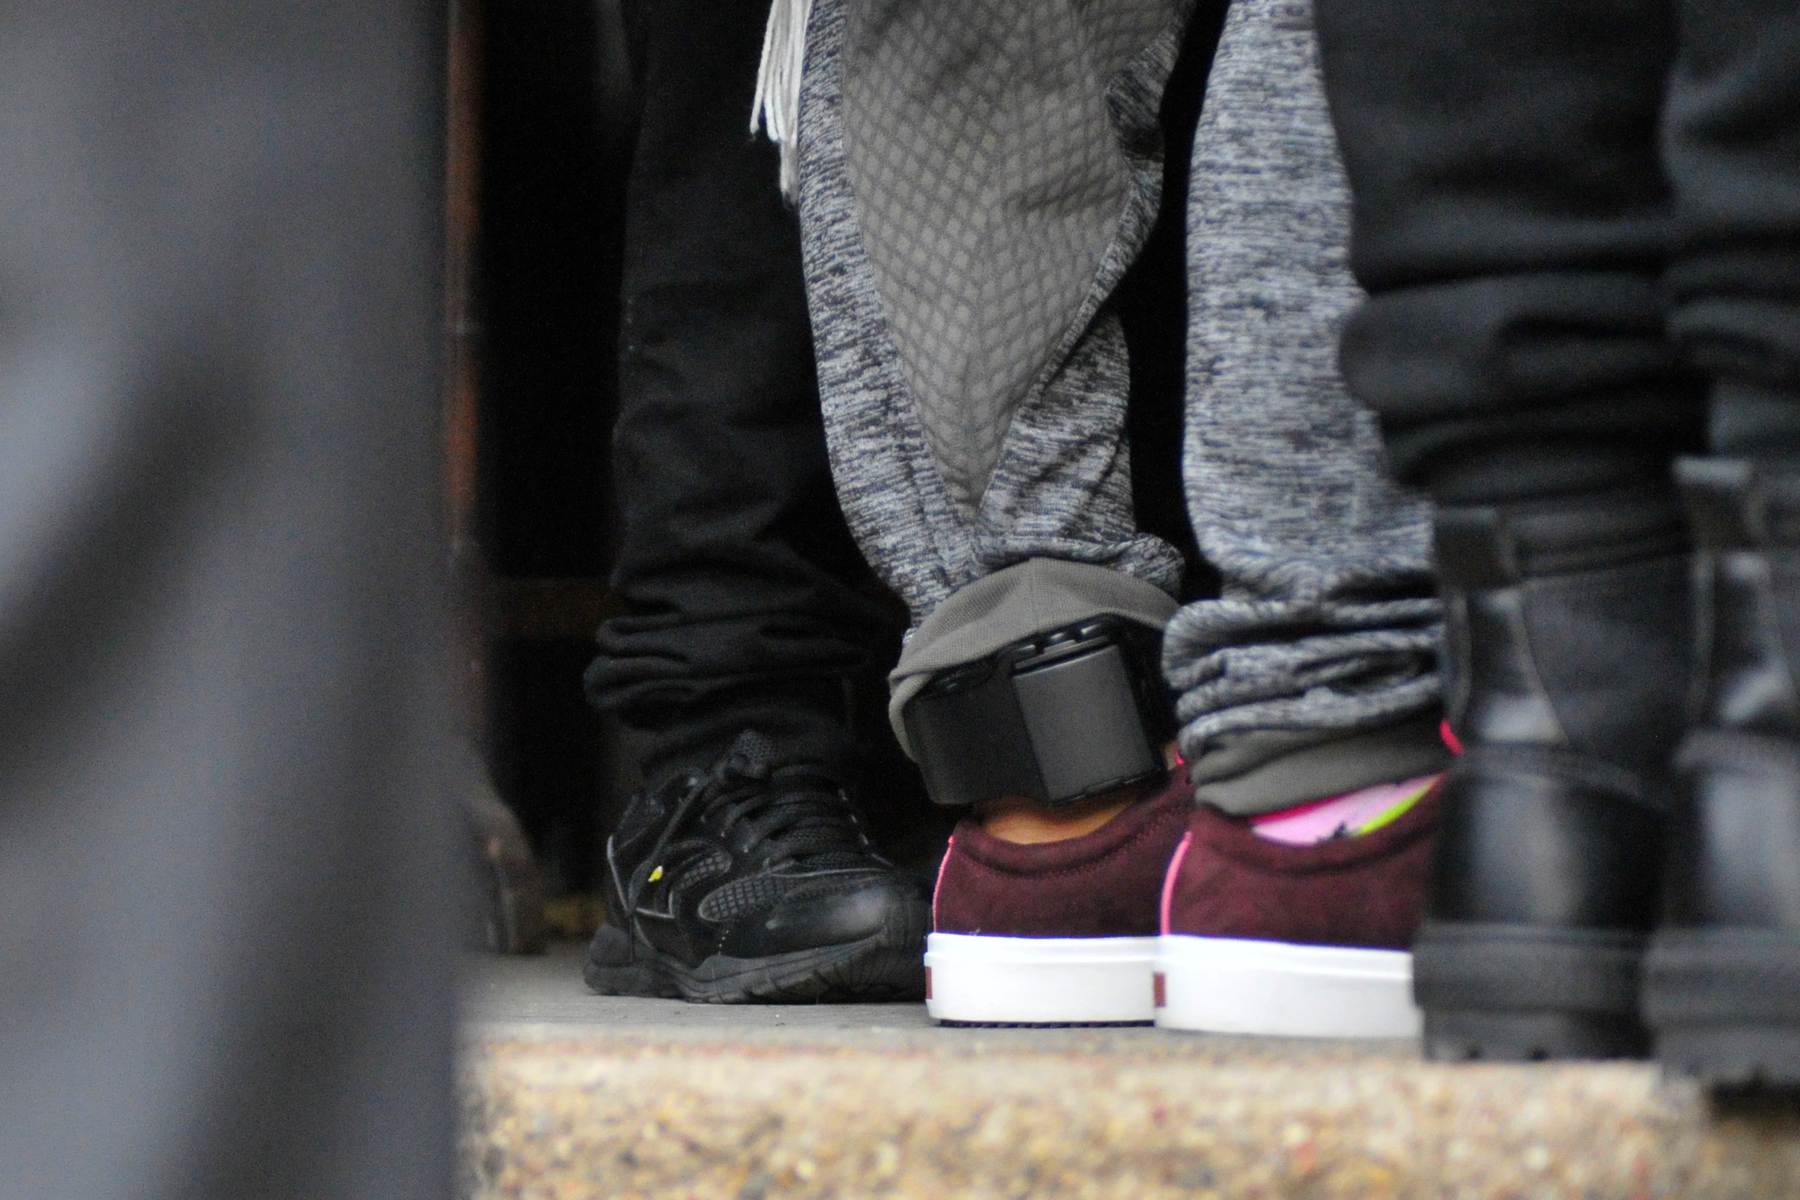 The ankle monitor worn by Camela Apolonio Hernandez is visible as she sees her children off in the doorway of her sanctuary at Church of the Advocate in North Philadelphia.